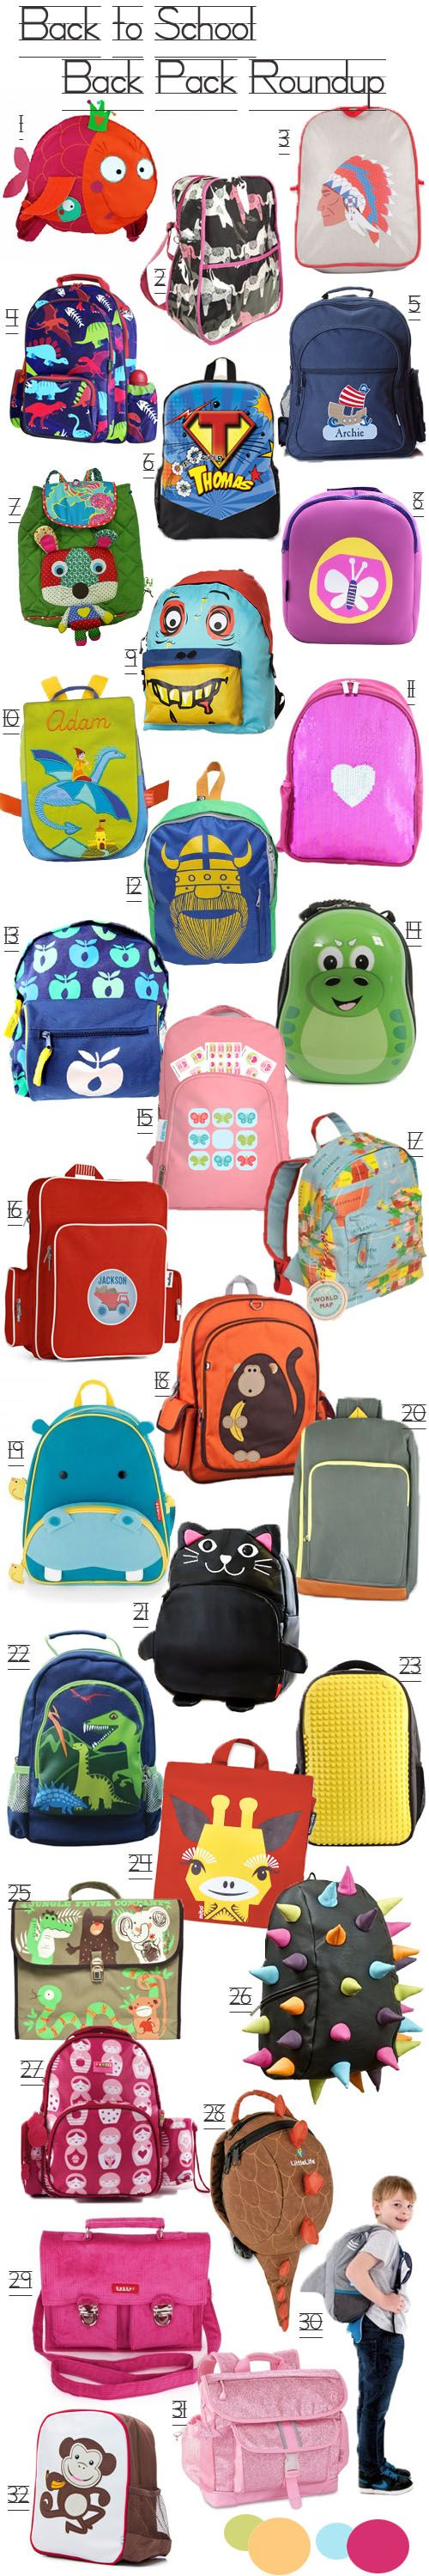 KidStyleFile Roundup: Top 32 Best Kids Backpacks 2014